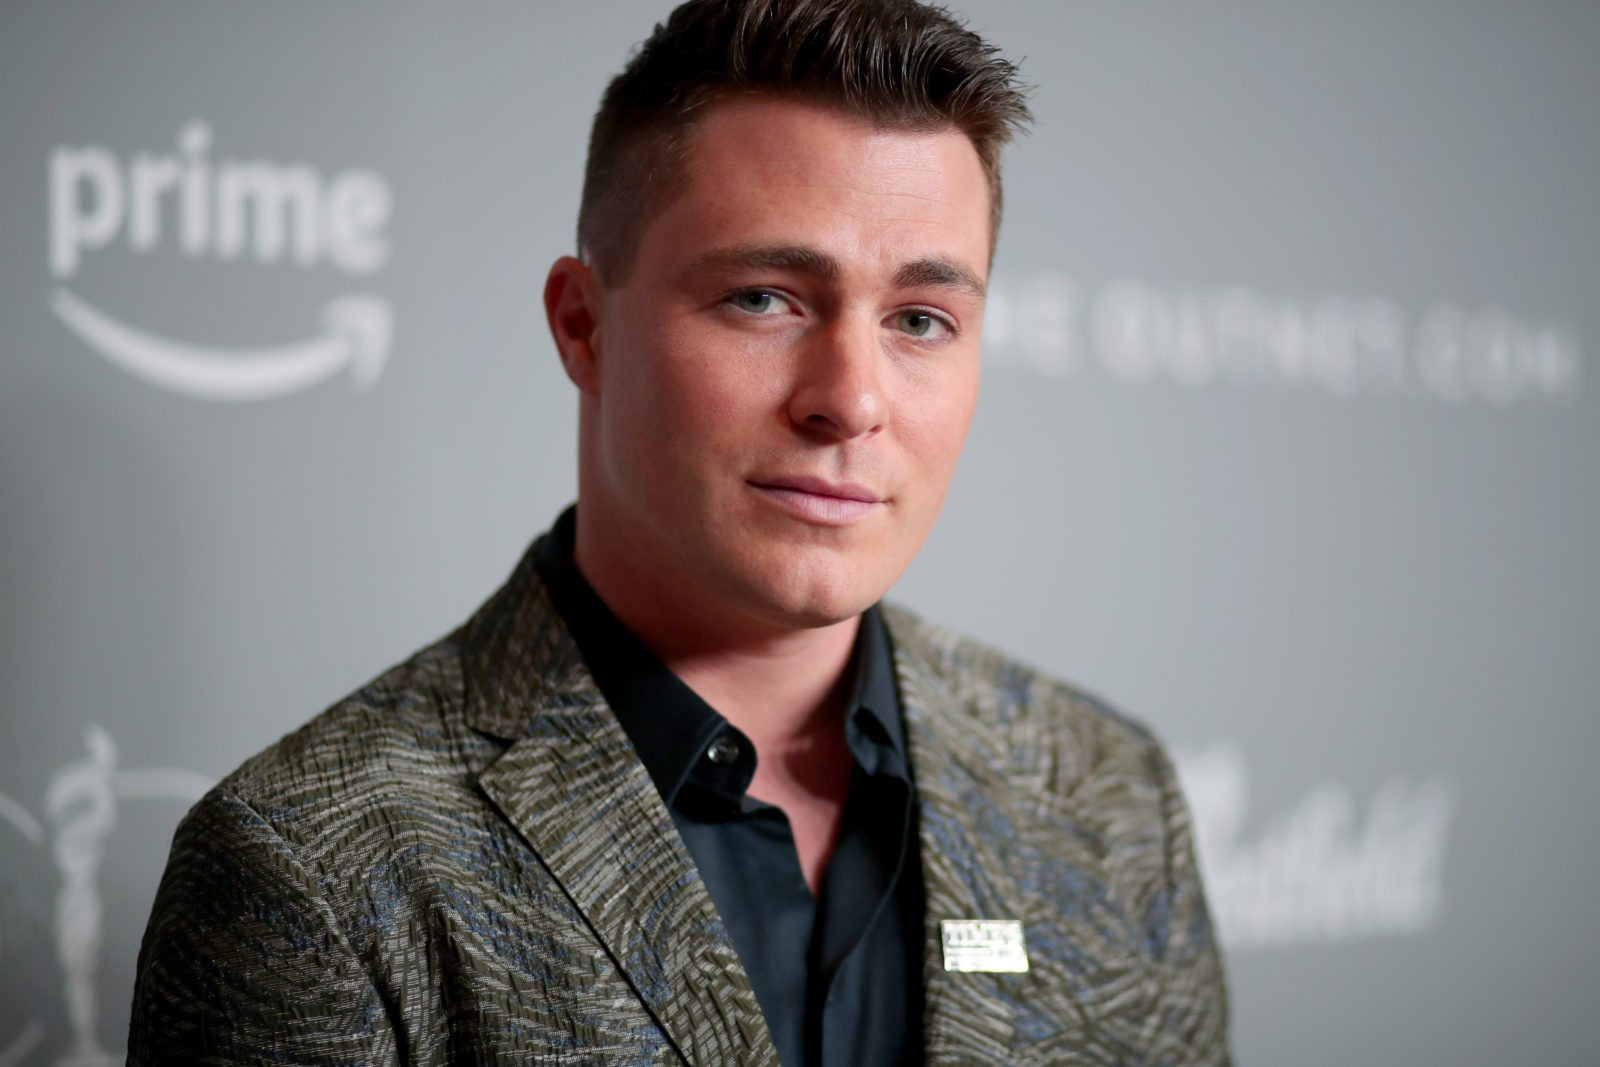 Colton Haynes shares the photo he spent years trying to erase from the internet